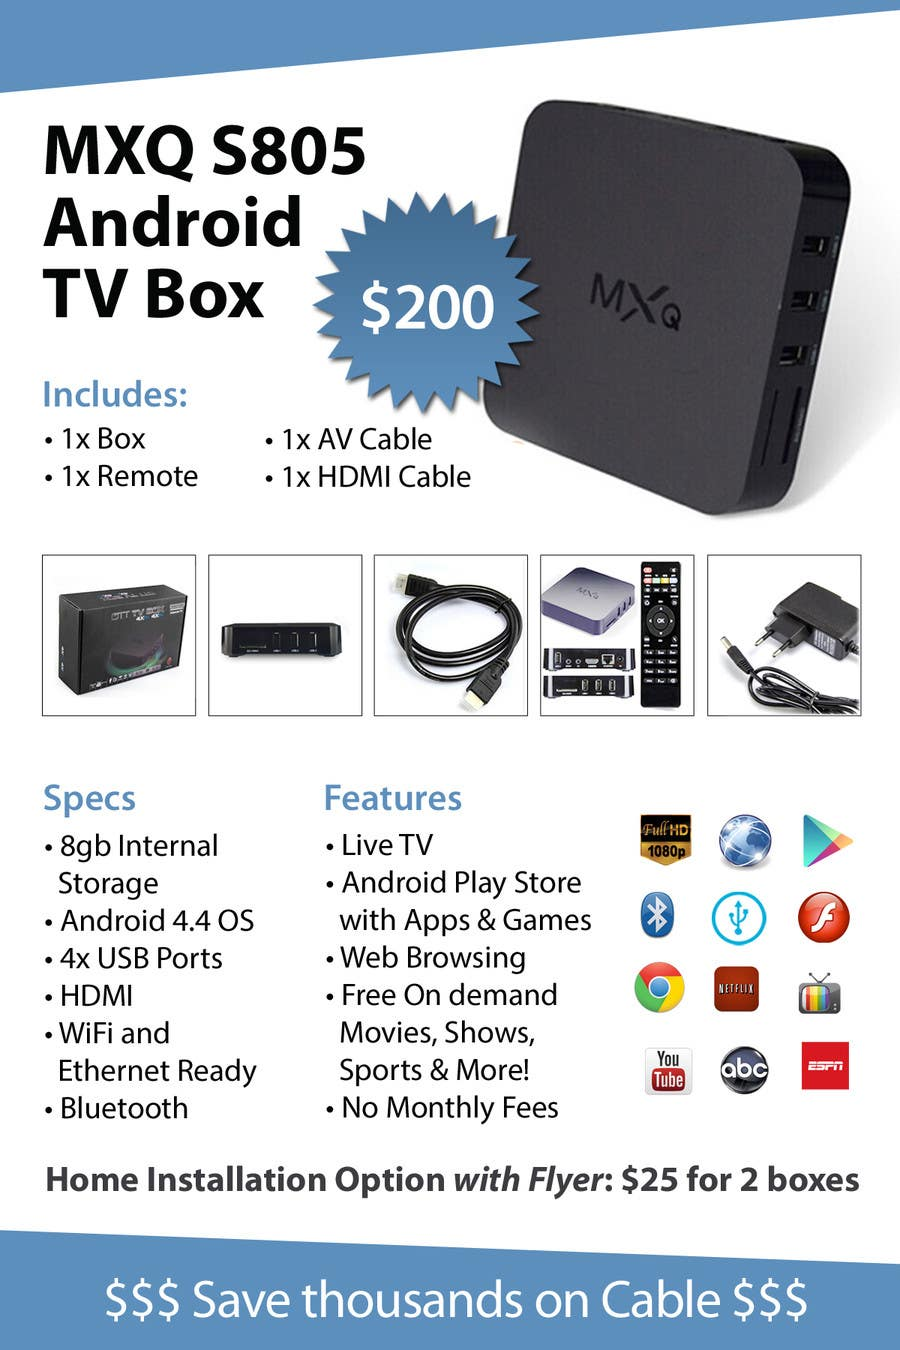 Design A Simple 4 Quot X 6 Quot Flyer For Android Tv Boxes